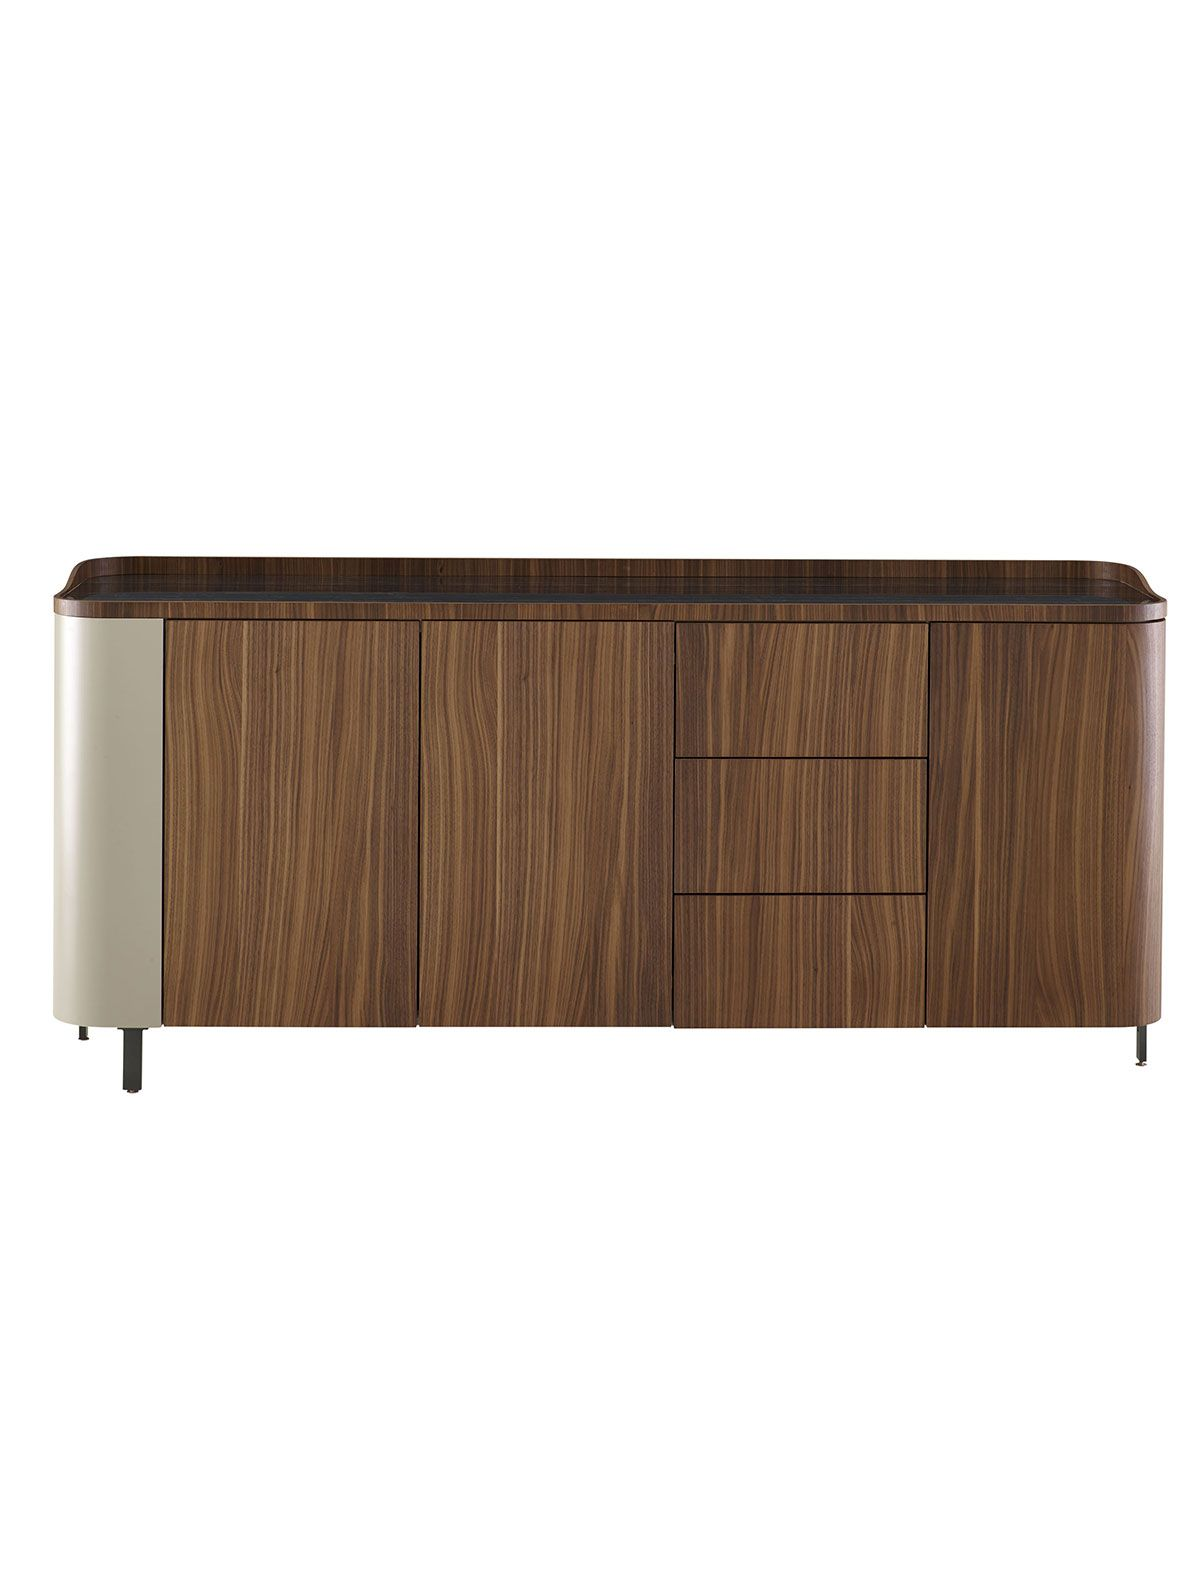 Console Ligne Roset Postmoderne Sideboard Designed By Eric Jourdan For Ligne Roset